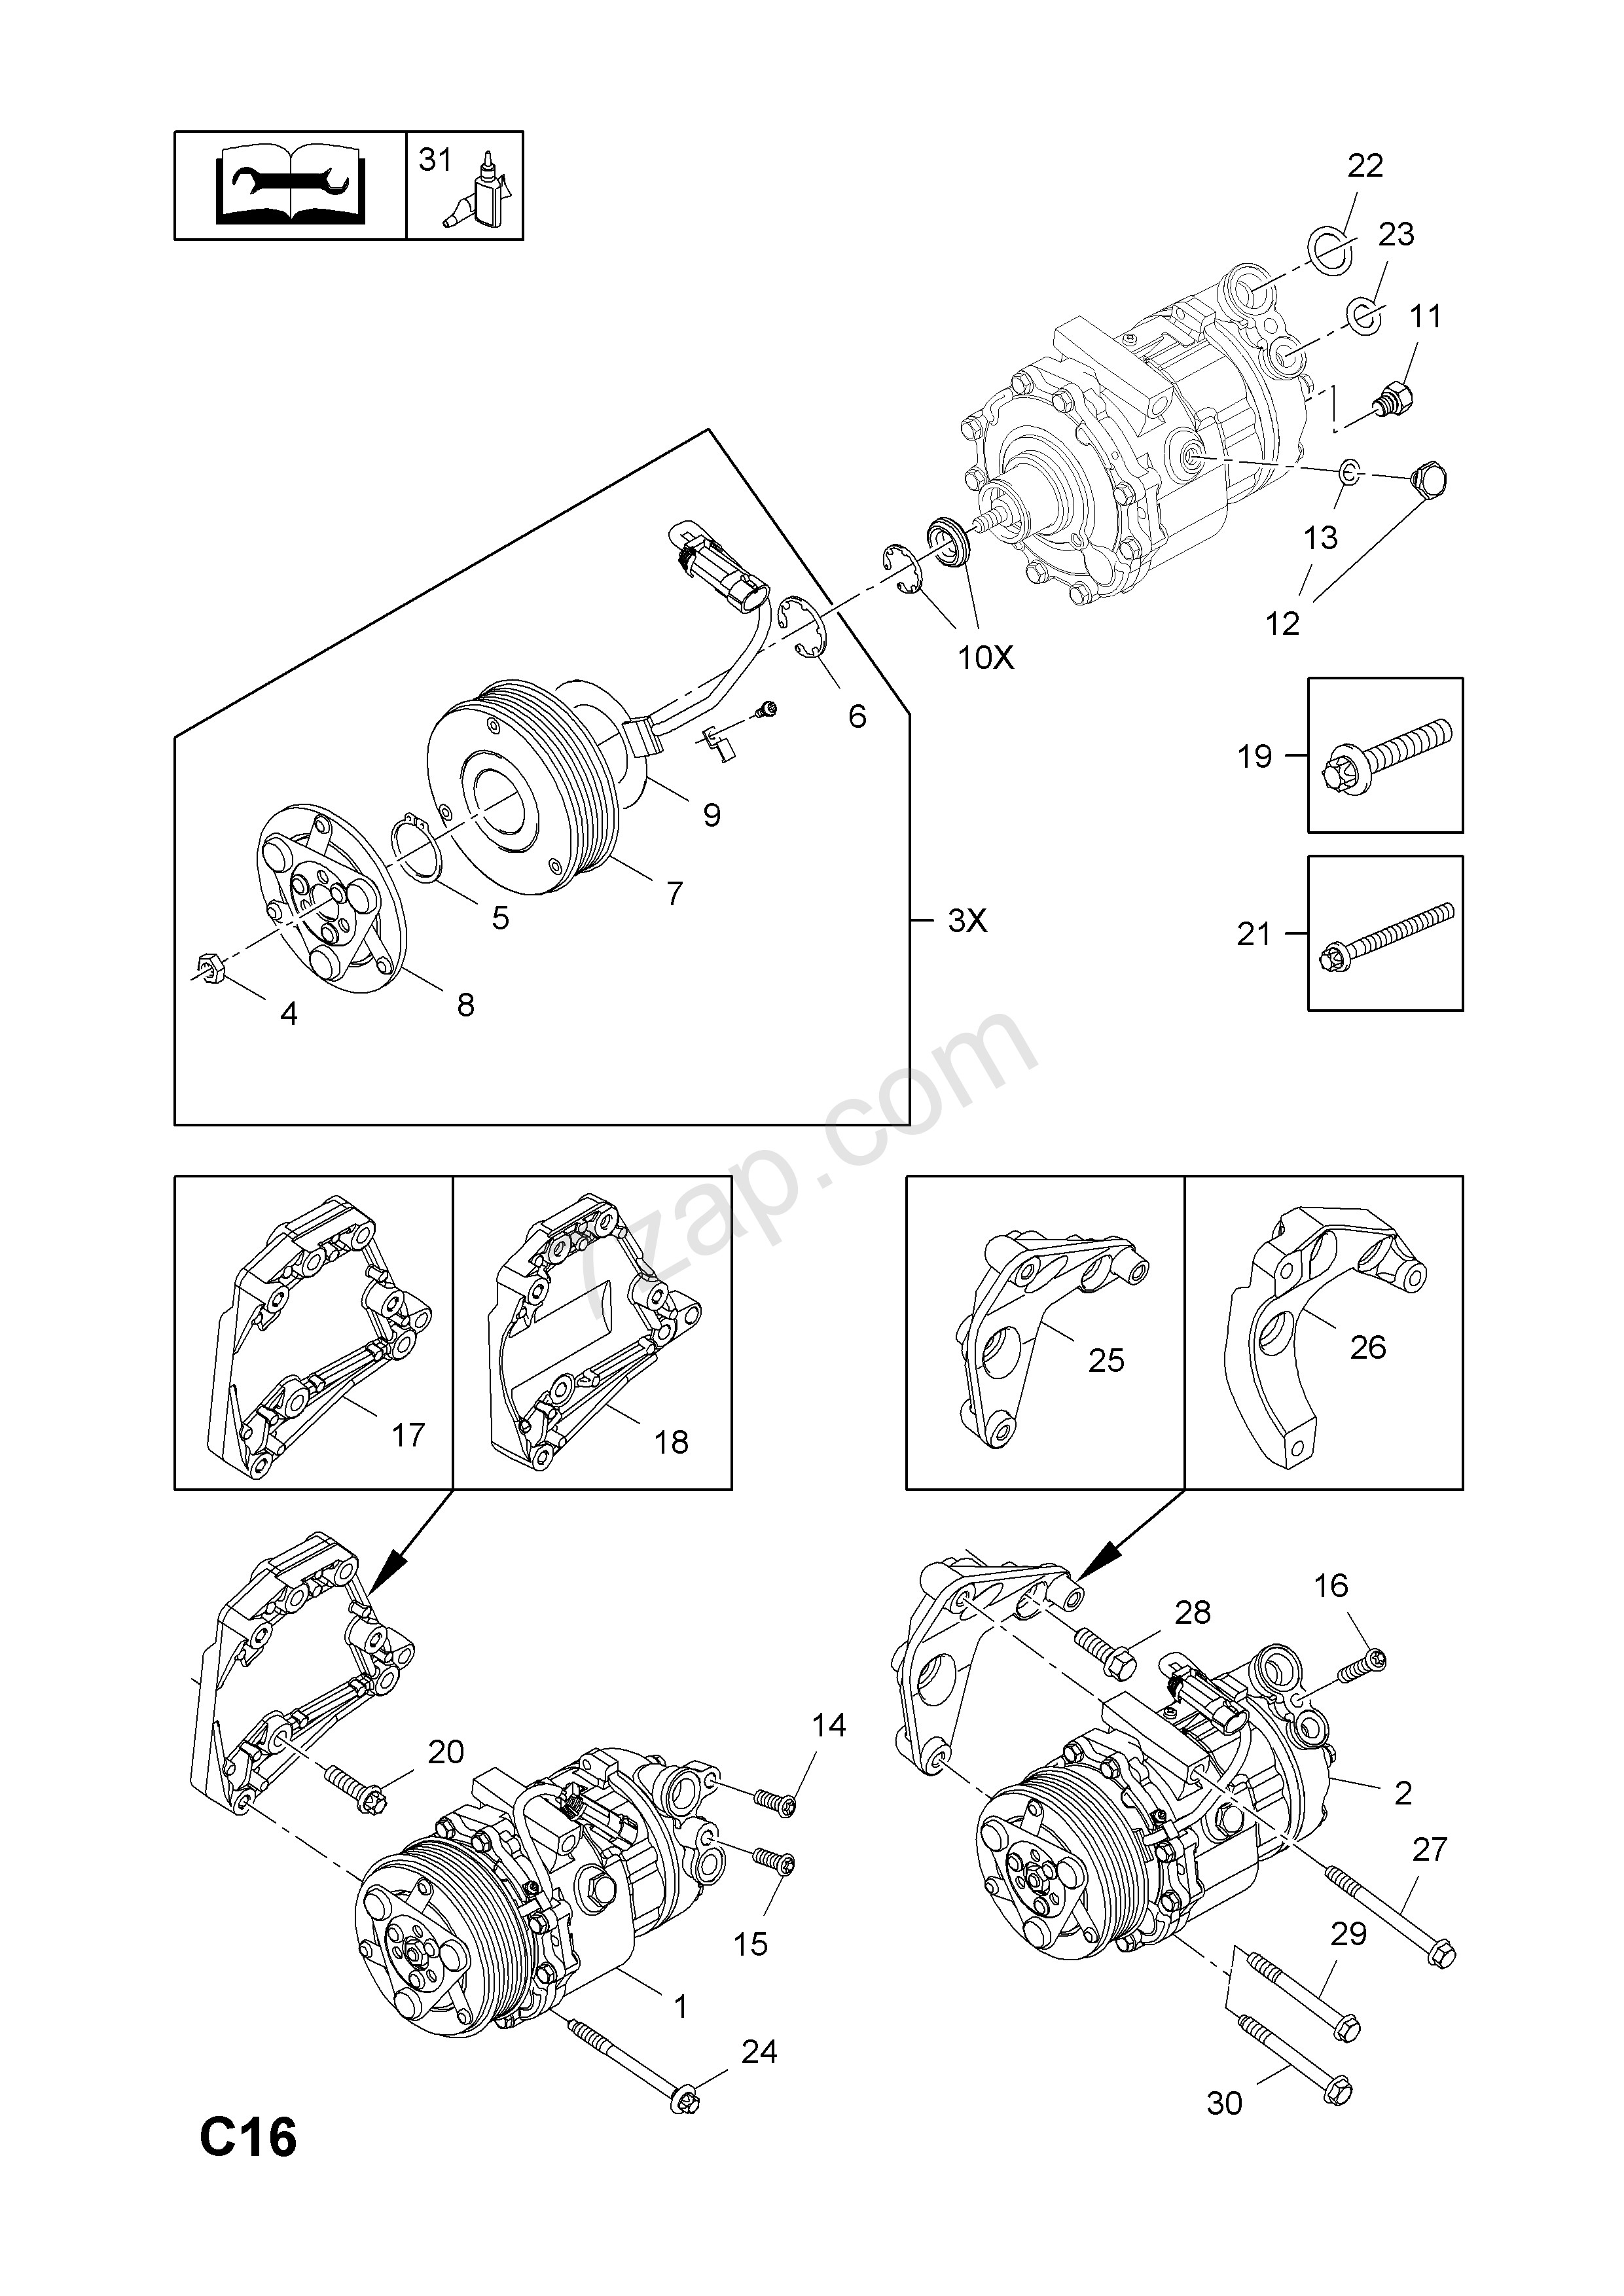 Vauxhall Corsa Engine Diagram Pressor and Fittings Contd [y13dt[ln9] Z13dt[ln9] Z13dtj[ldp Of Vauxhall Corsa Engine Diagram